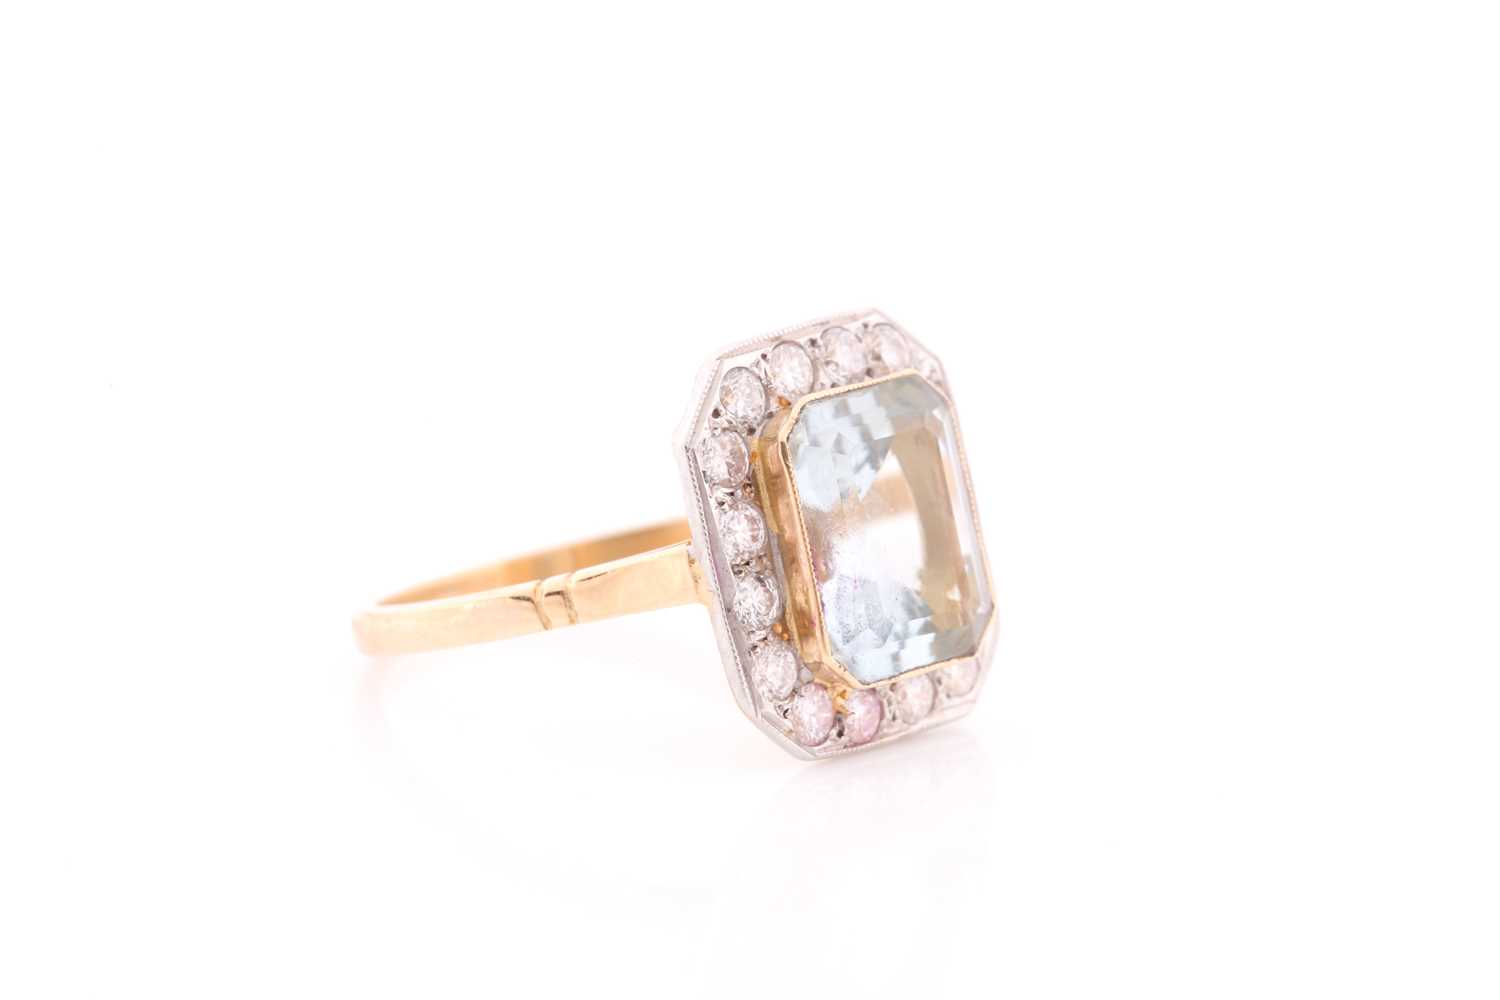 A diamond and aquamarine ring, set with an emerald-cut aquamarine of approximately 2.30 carats, - Image 2 of 4